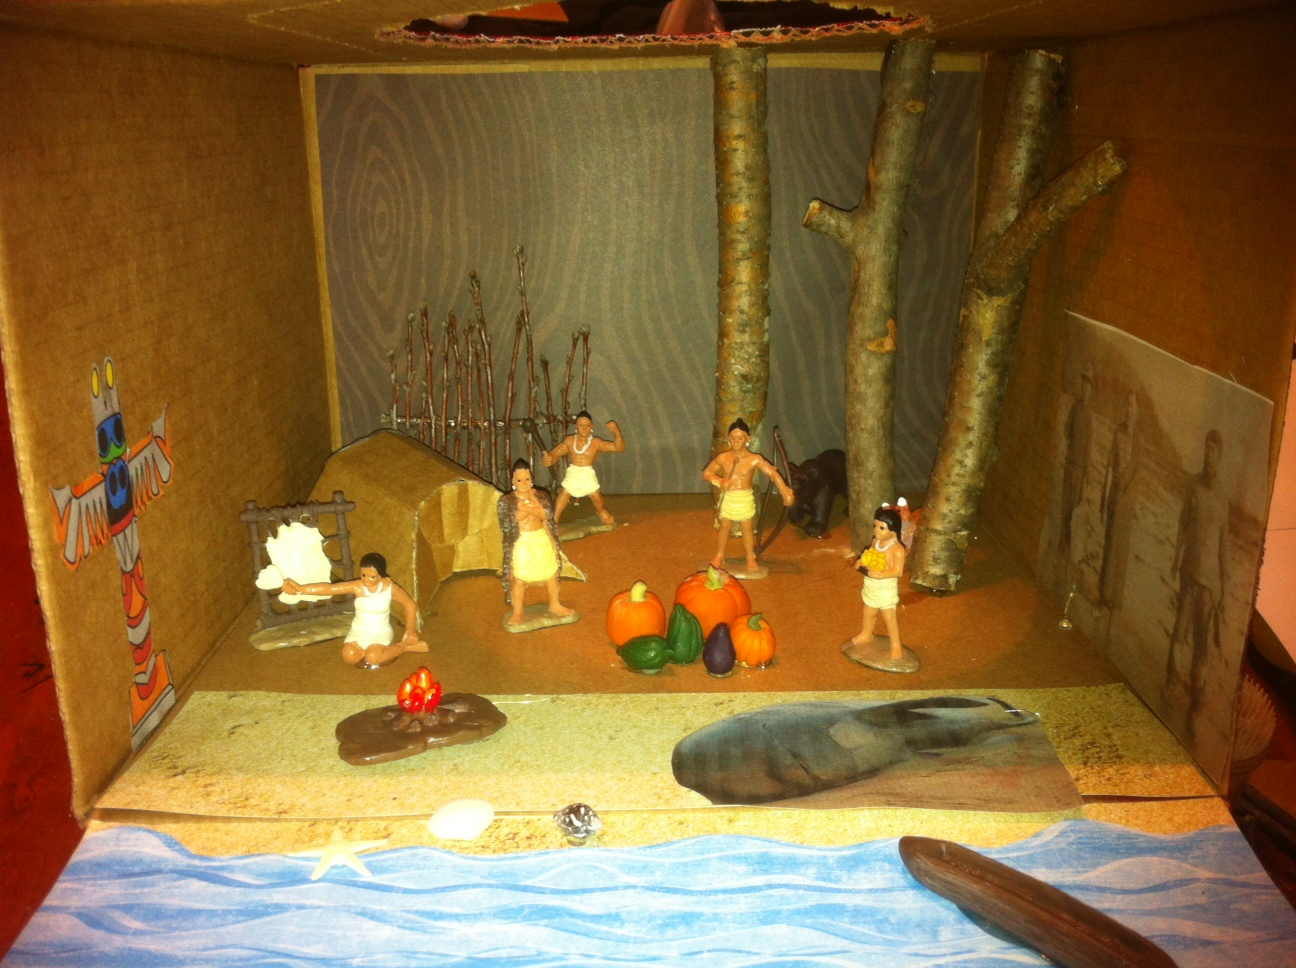 Indian Dioramas http://www.dioramasandcleverthings.com/2012/10/makah-indian-diorama.html